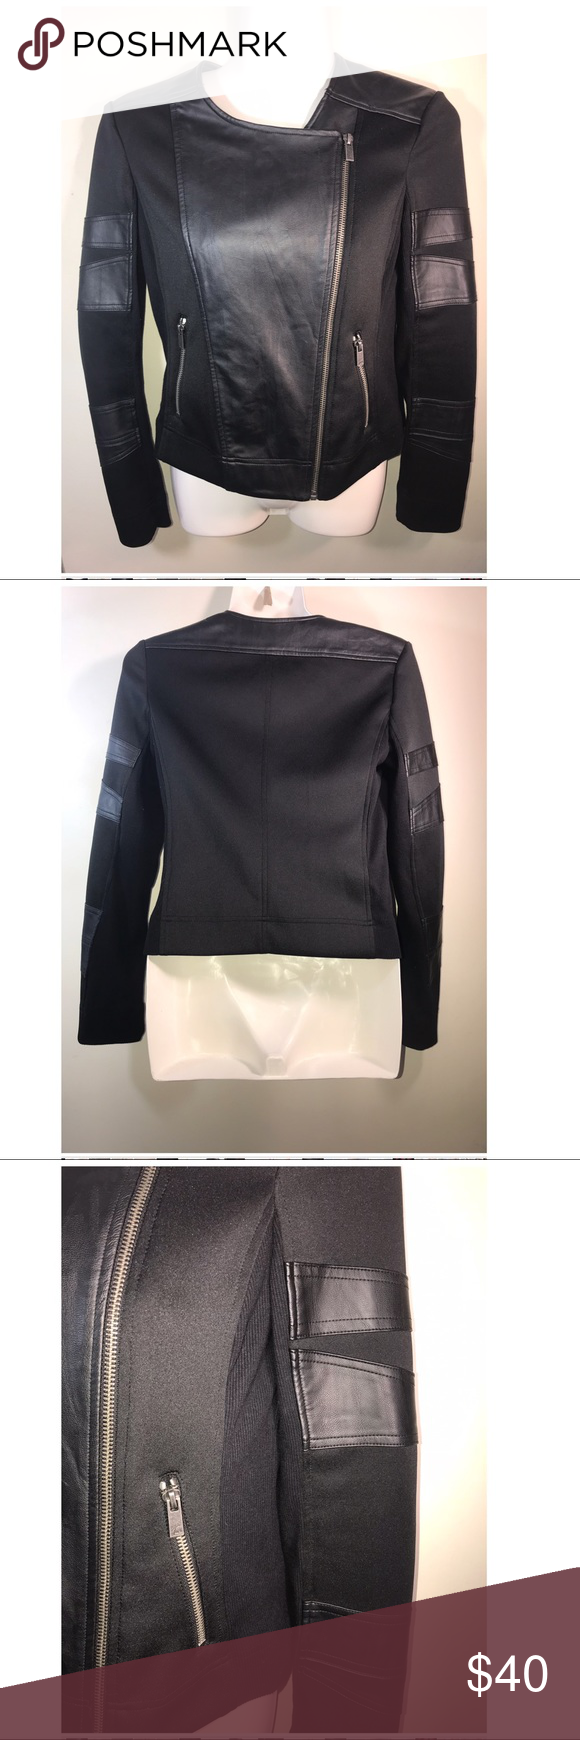 Two By Vince Camuto Black Faux Leather Jacket Xs Black Faux Leather Jacket Faux Leather Jackets Leather Jacket [ 1740 x 580 Pixel ]